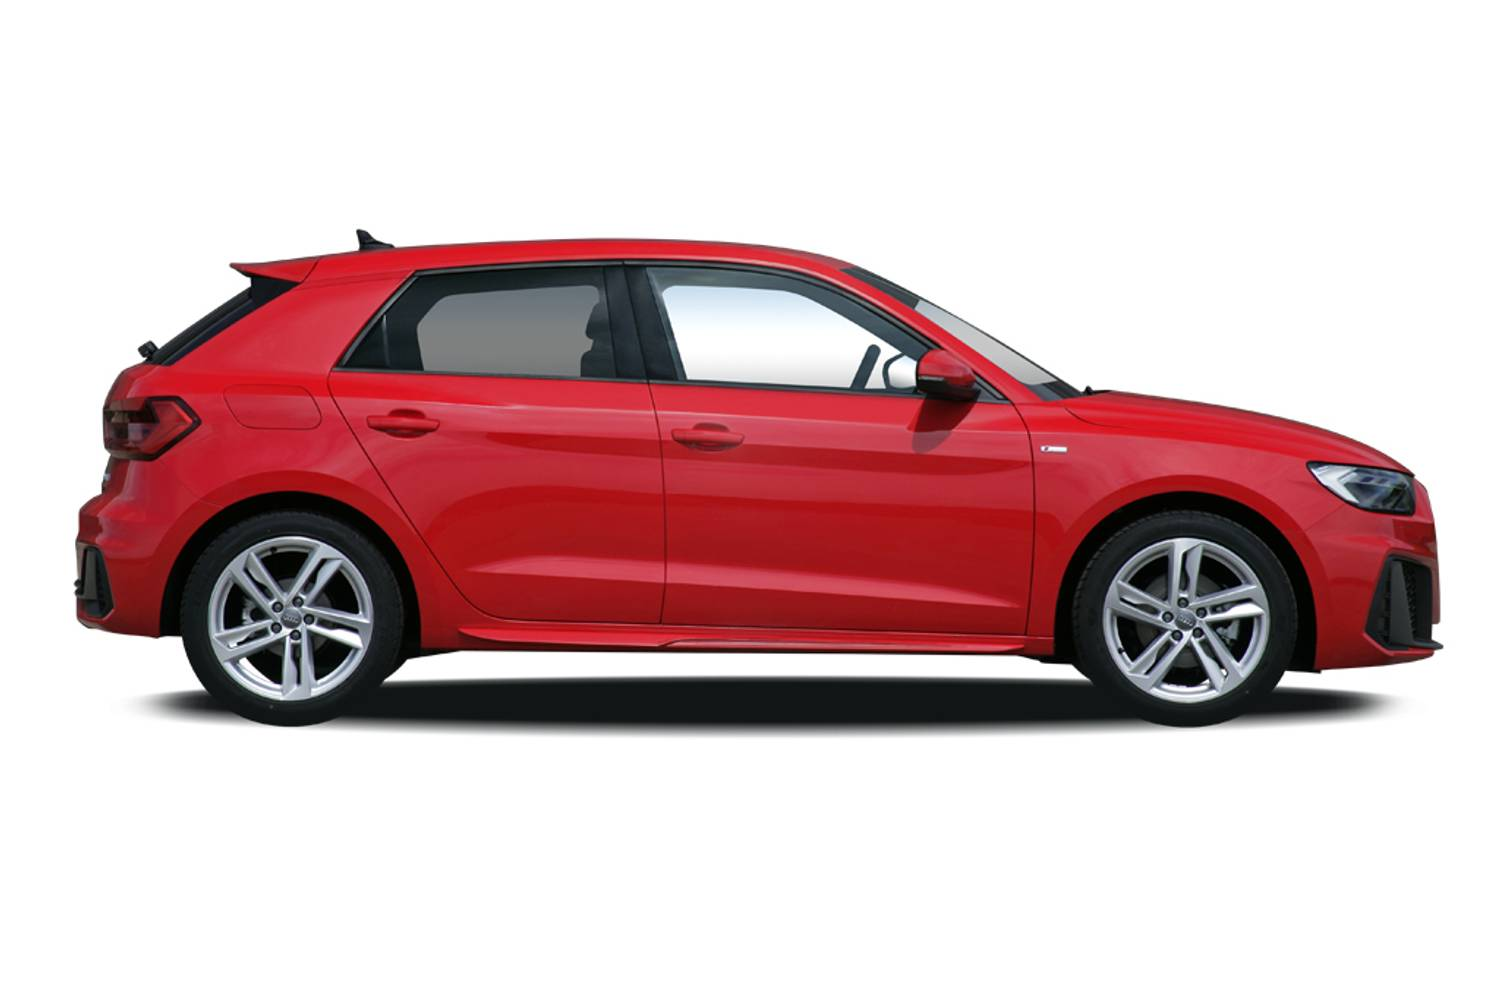 New Audi A1 Sportback Special Editions 35 TFSI S Line Contrast Edition  5-door S Tronic (2018-) for Sale